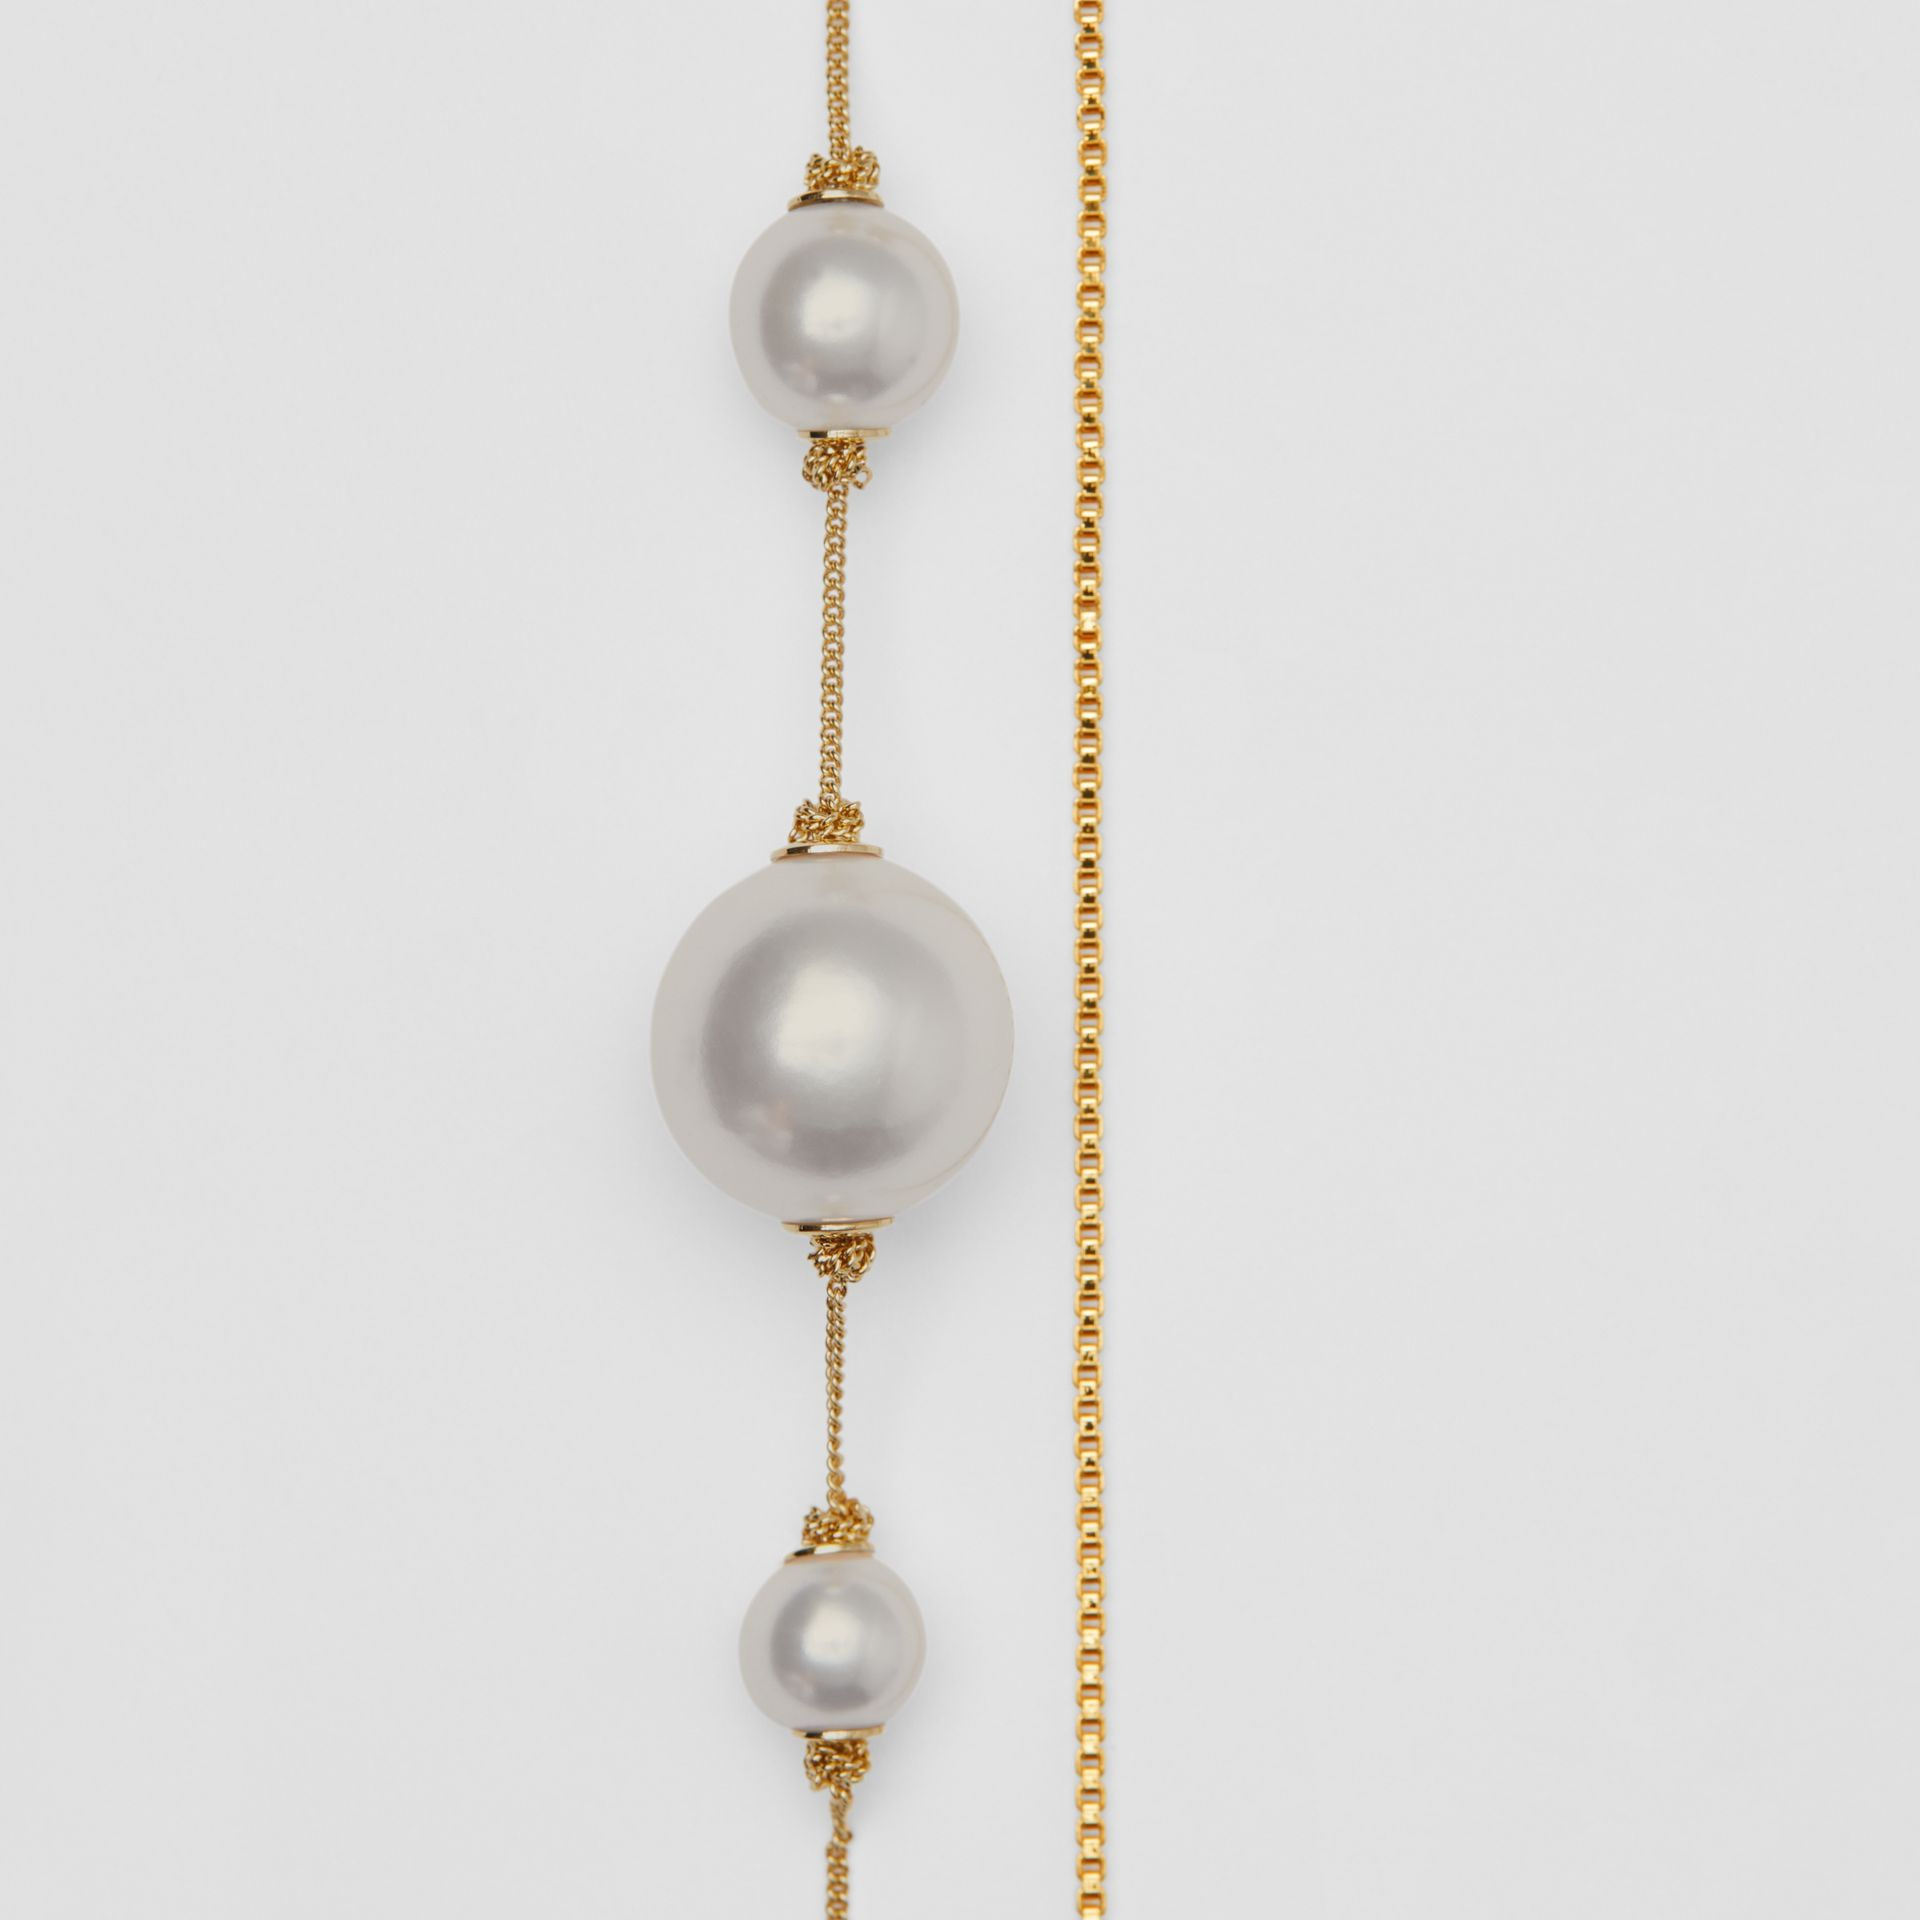 Faux Pearl and Oval Gold-plated Drop Earrings in Light - Women | Burberry - gallery image 3